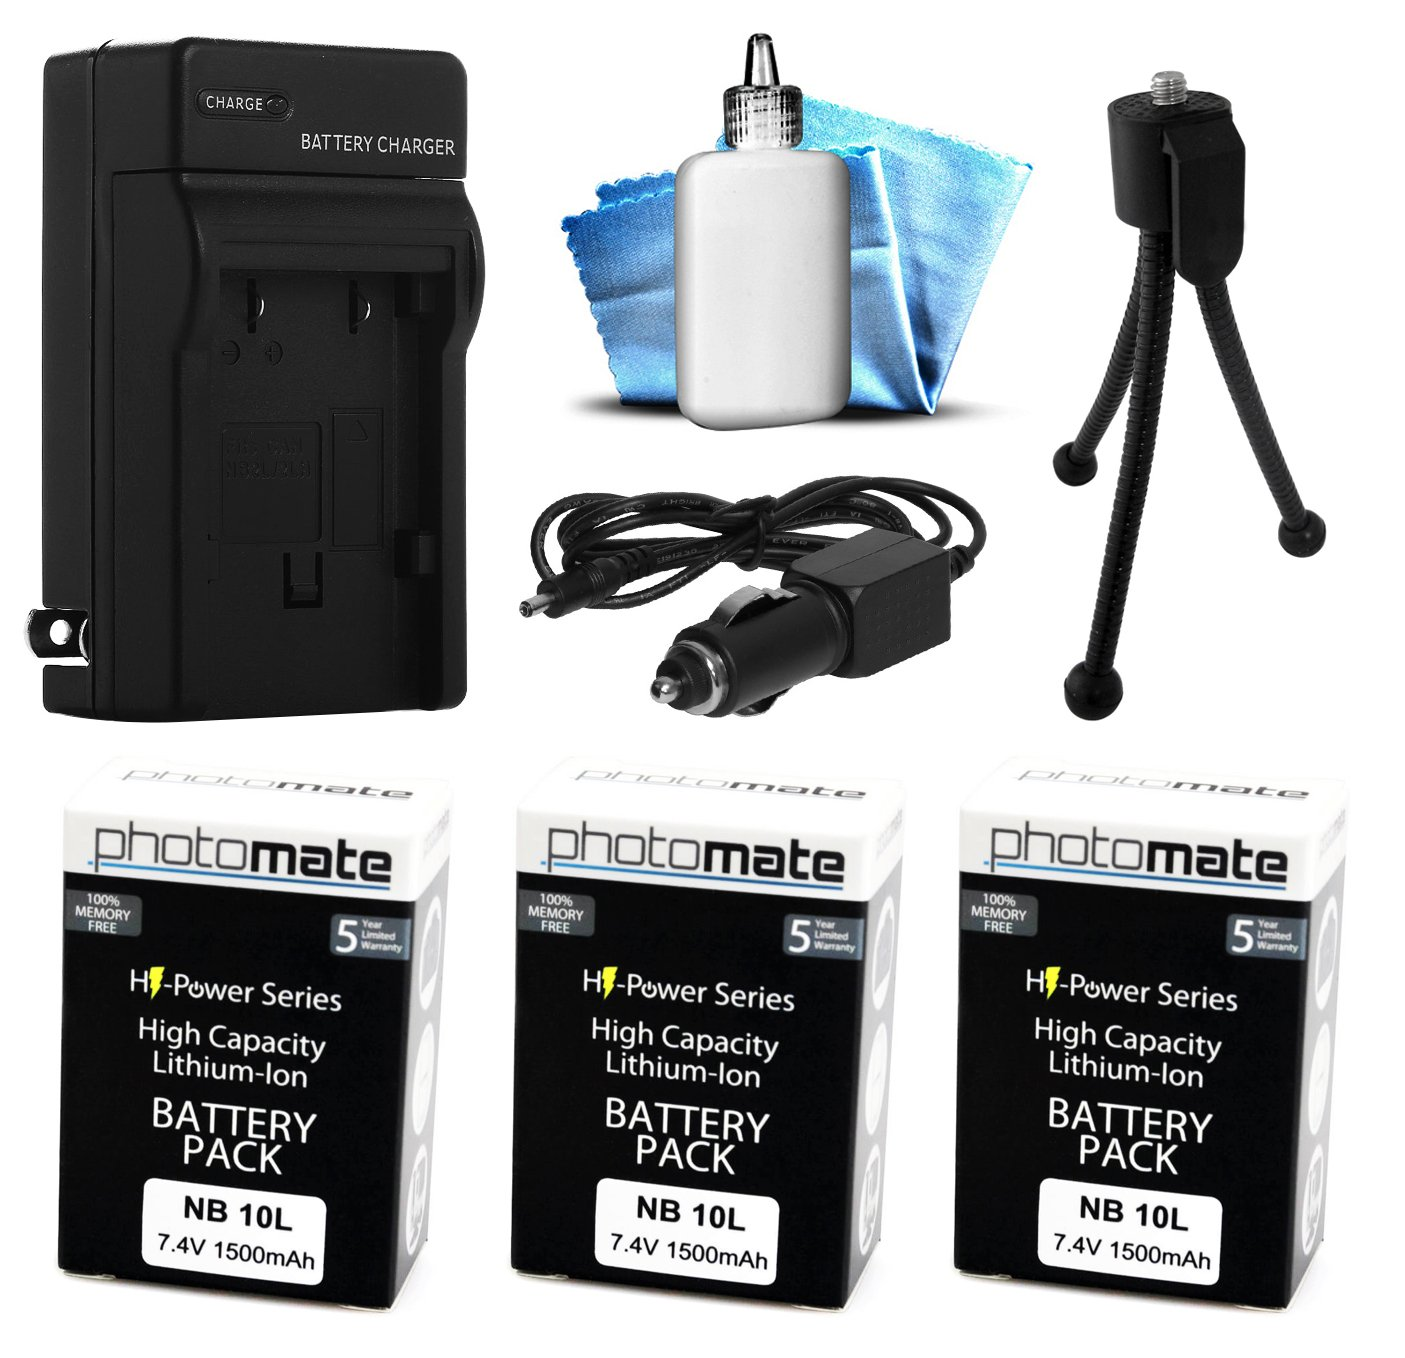 (3 Pack) PhotoMate NB-10L NB10L Ultra High Capacity Rechargeable Battery (1500mAh) + Rapid Home AC Wall Charger + Car Adapter + Euro Plug + Cleaning Kit + Mini Tripod for Canon Powershot SX40 HS, SX40HS, SX50 HS, SX50HS, SX60 HS, SX60HS, G1 X, G1X, G15, G